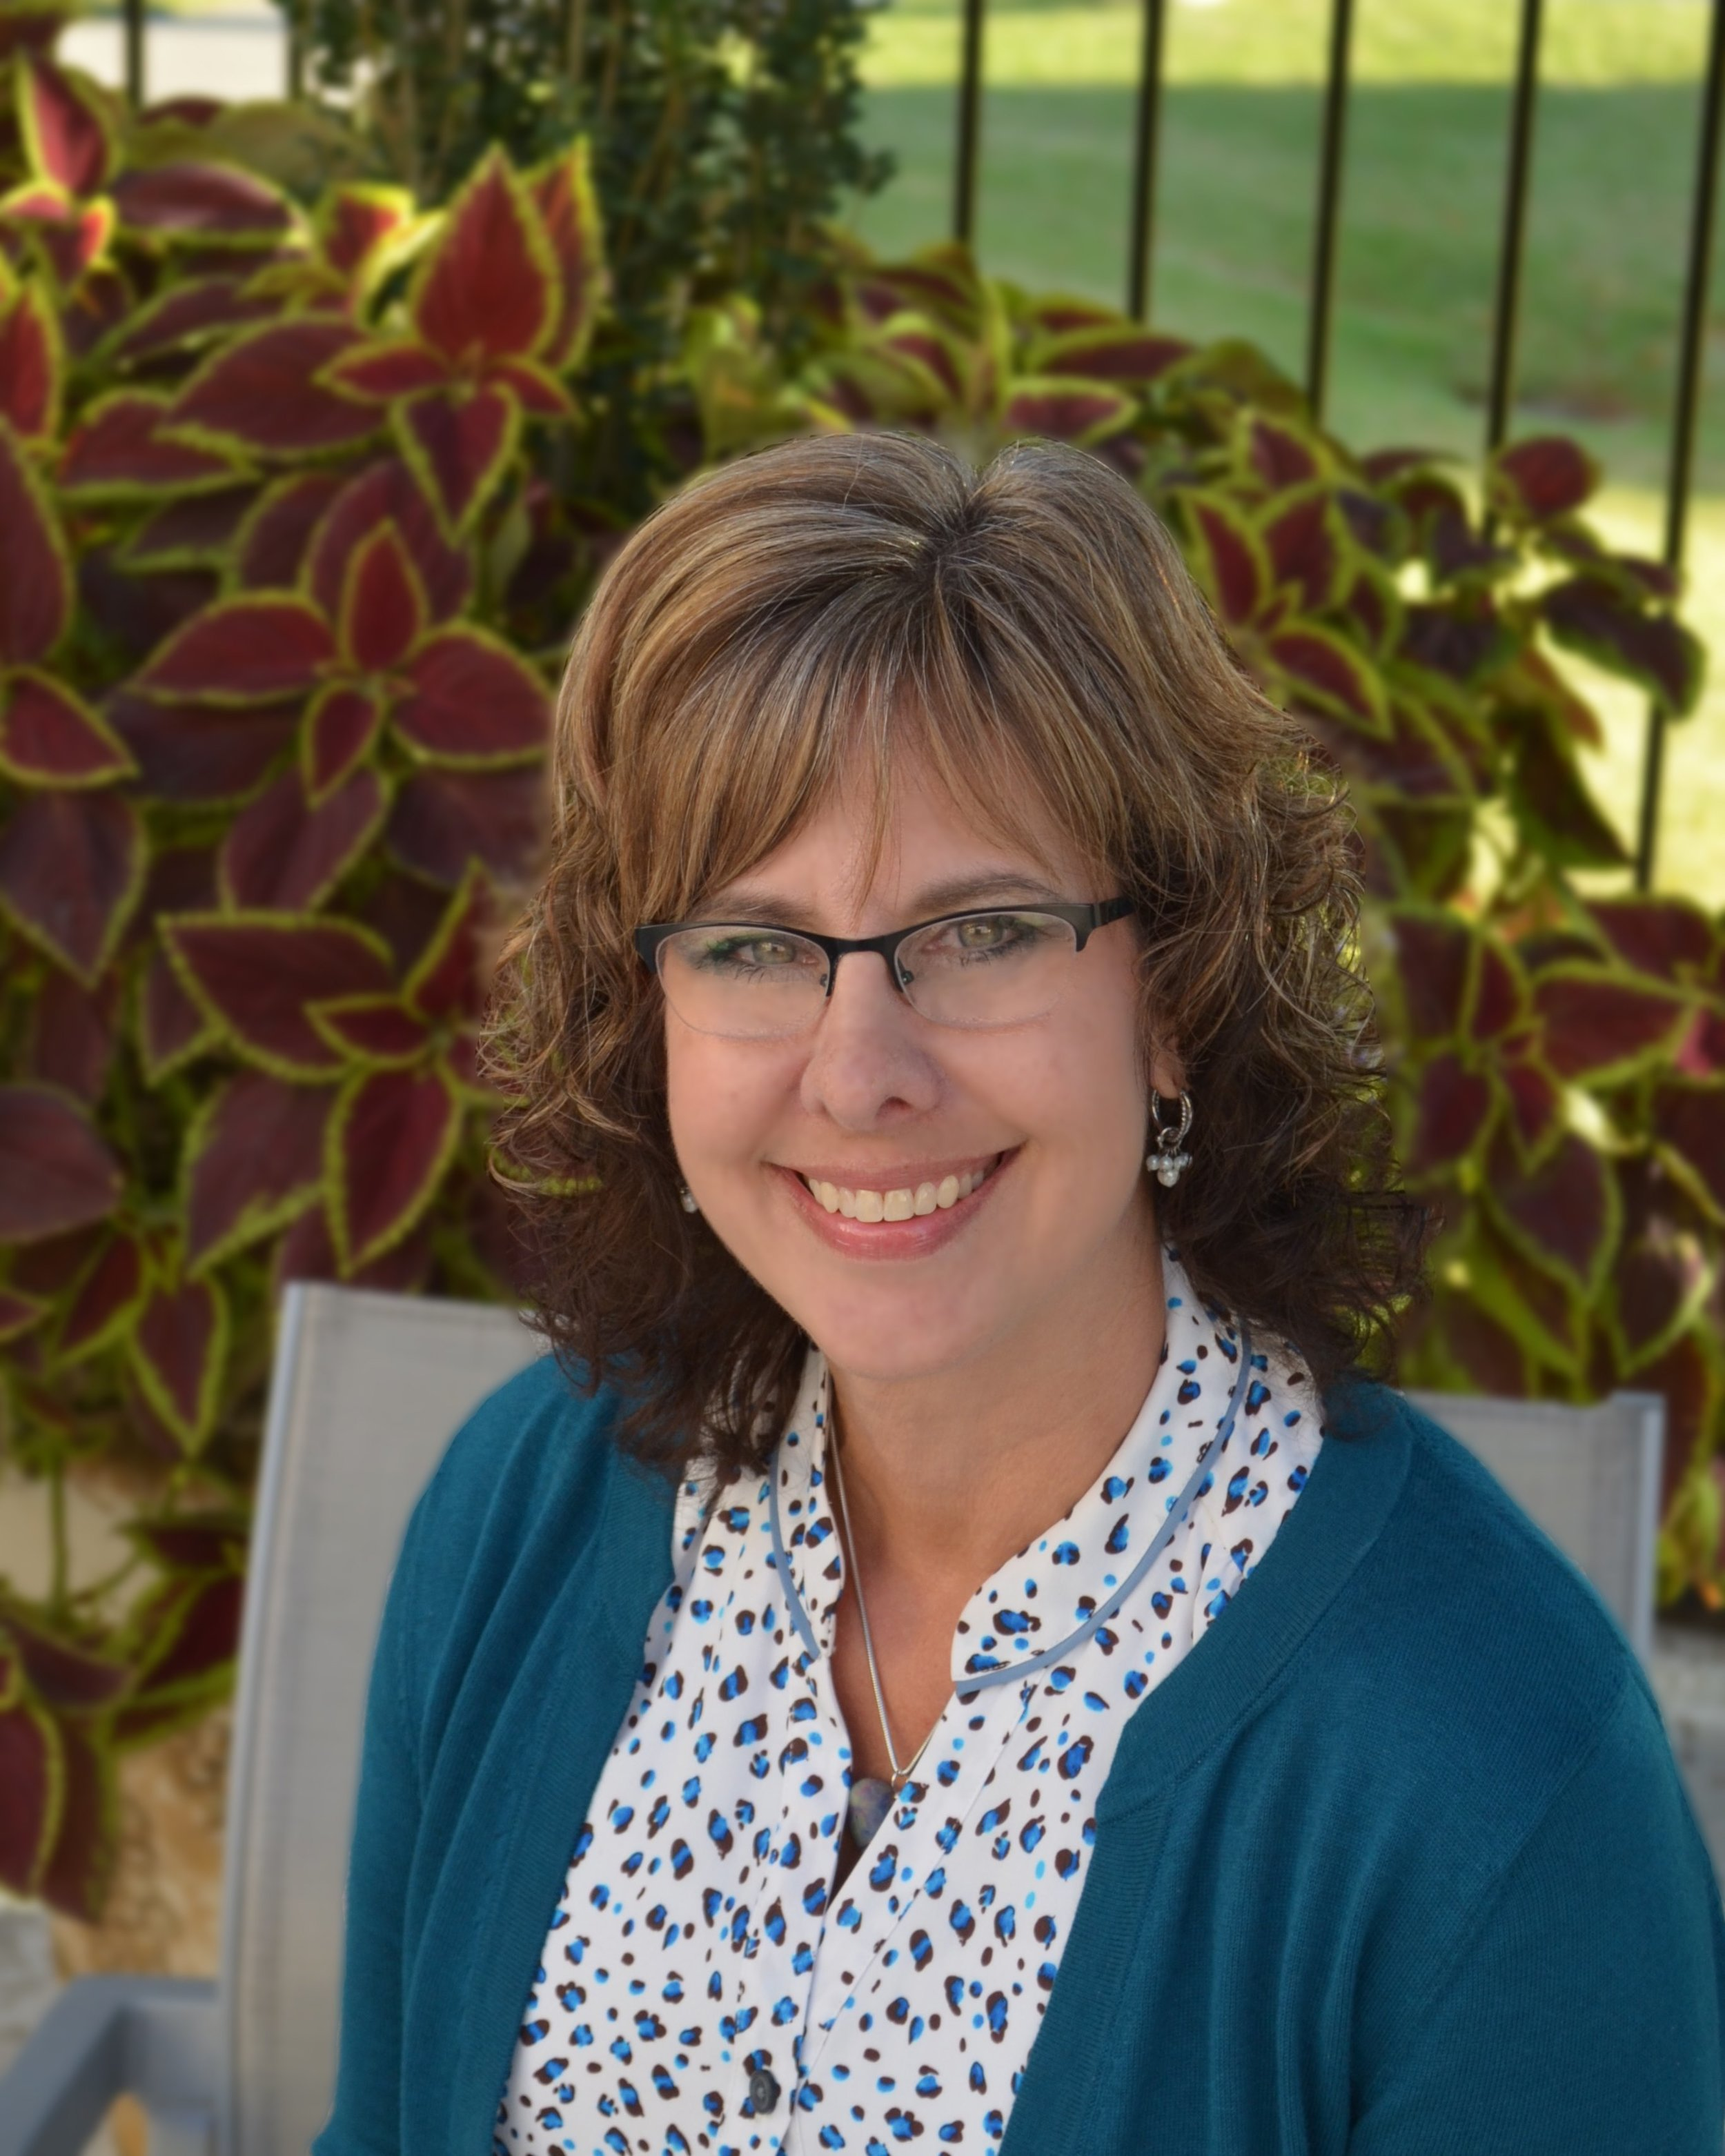 Lesley Swanson -A Post-Abortion Story - I have a Master's in Biblical Counseling from Trinity College & Seminary in Newburgh, IN. And I am also an ACBC certified Biblical Counselor. I was led into Biblical Counseling from a ministry that is near and dear to my heart called, Healing Hearts Ministries International. I found them via the internet over 15 years ago. God used a special friend to speak truth in love to me that set me on a course to seek His wisdom and truth for healing my broken heart.Today I do much of my Biblical Counseling through my home church, Spring Lake Church, in Green Bay.My heart is specifically for women broken by the sin of abortion but I truly love pointing all broken and hurting women to Christ. Sometimes we choose how we will disobey Him and sometimes someone else's disobedient choices profoundly effect our lives.